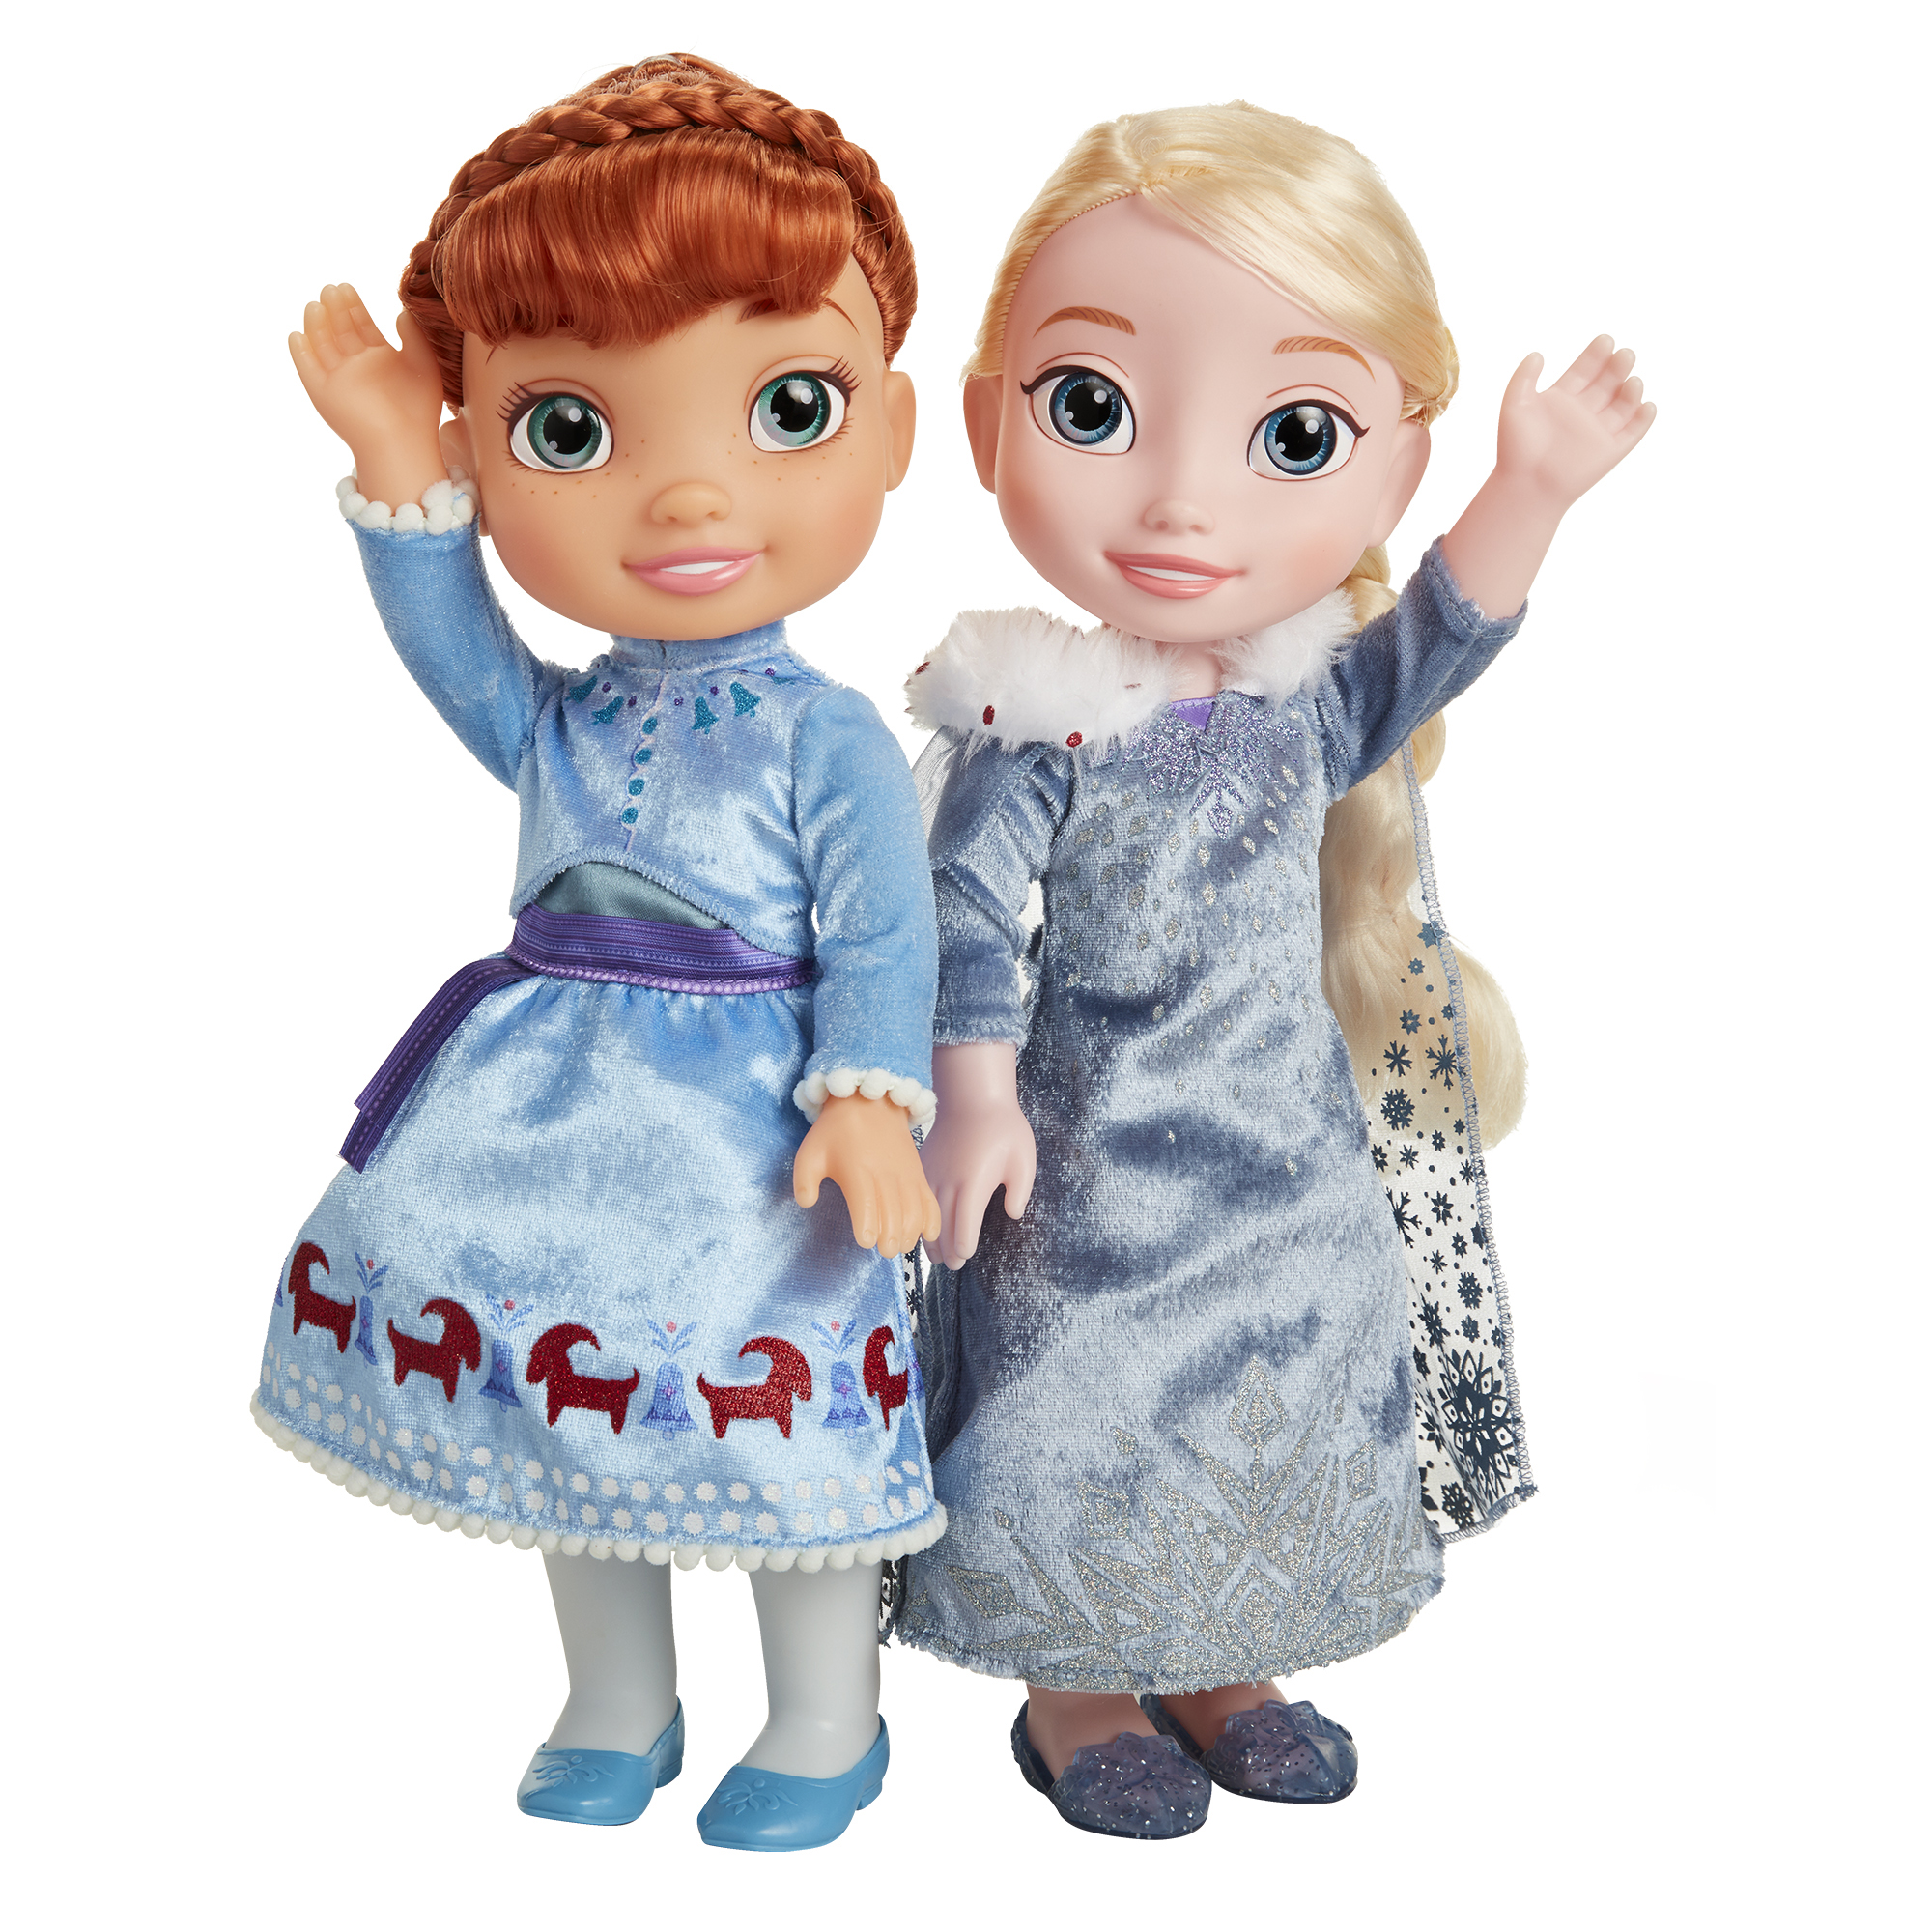 Disney Frozen Olaf's Frozen Adventure Singing Traditions Elsa & Anna by Jakks Pacific